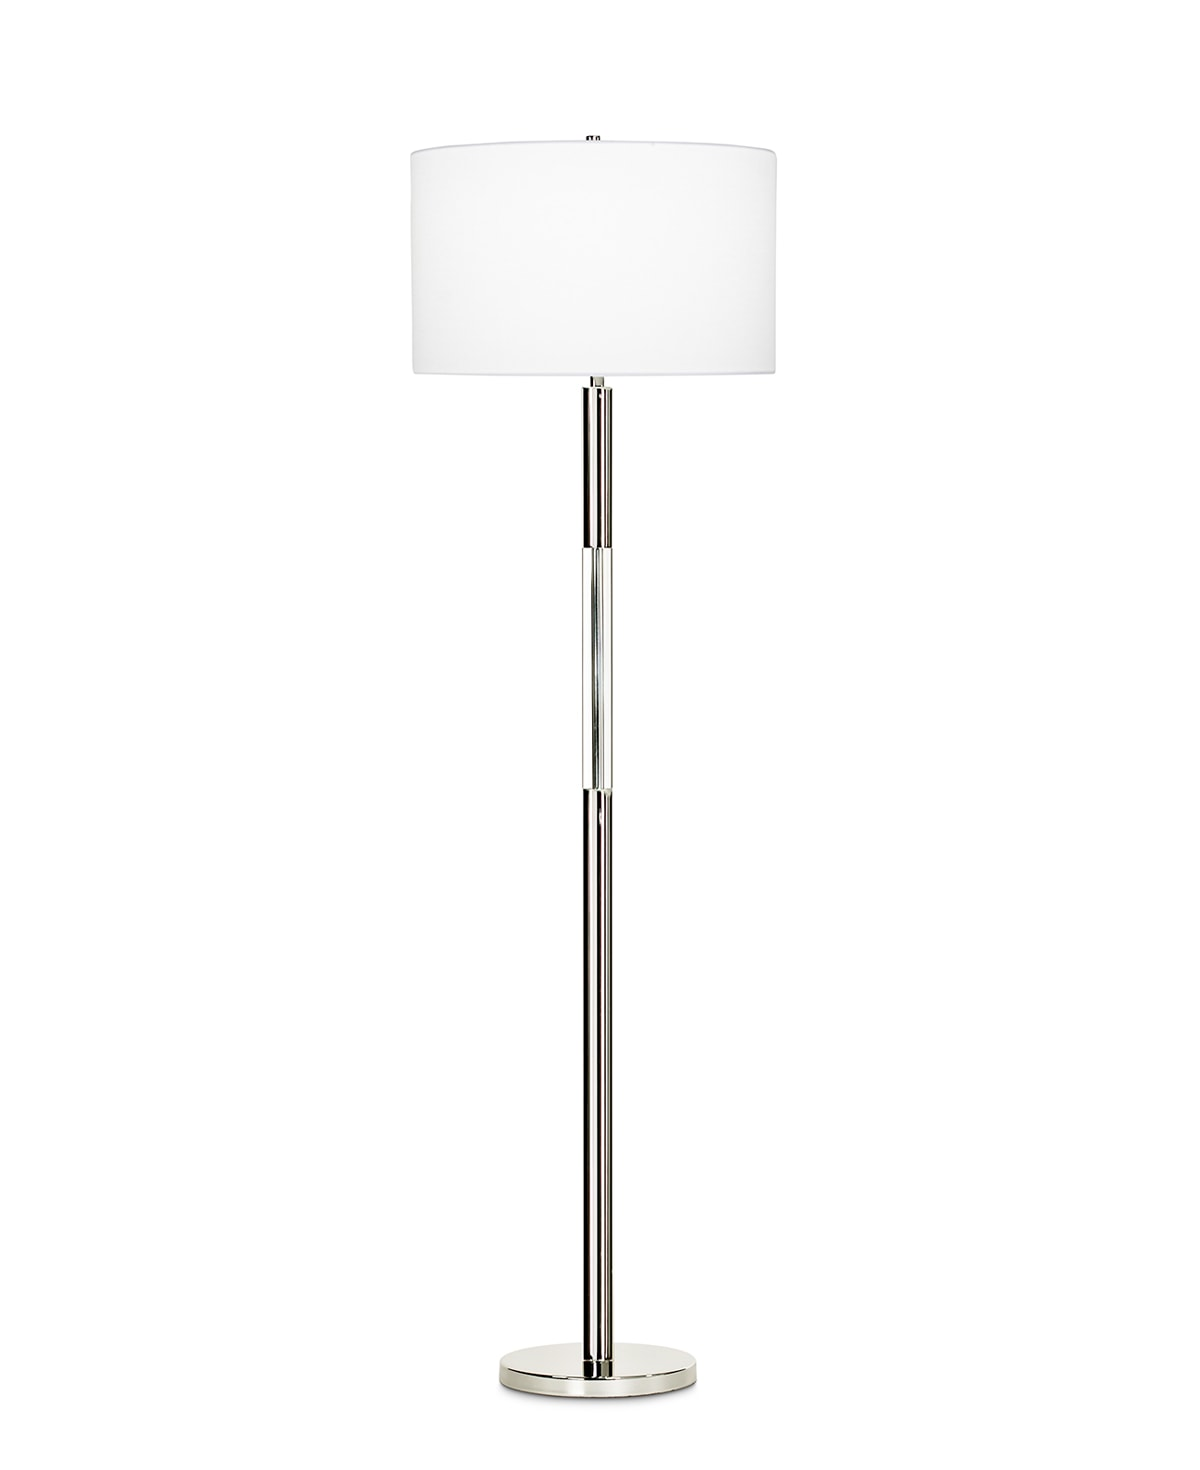 FlowDecor Poppy Floor Lamp in metal with polished nickel finish and crystal and white linen drum shade (# 3719)